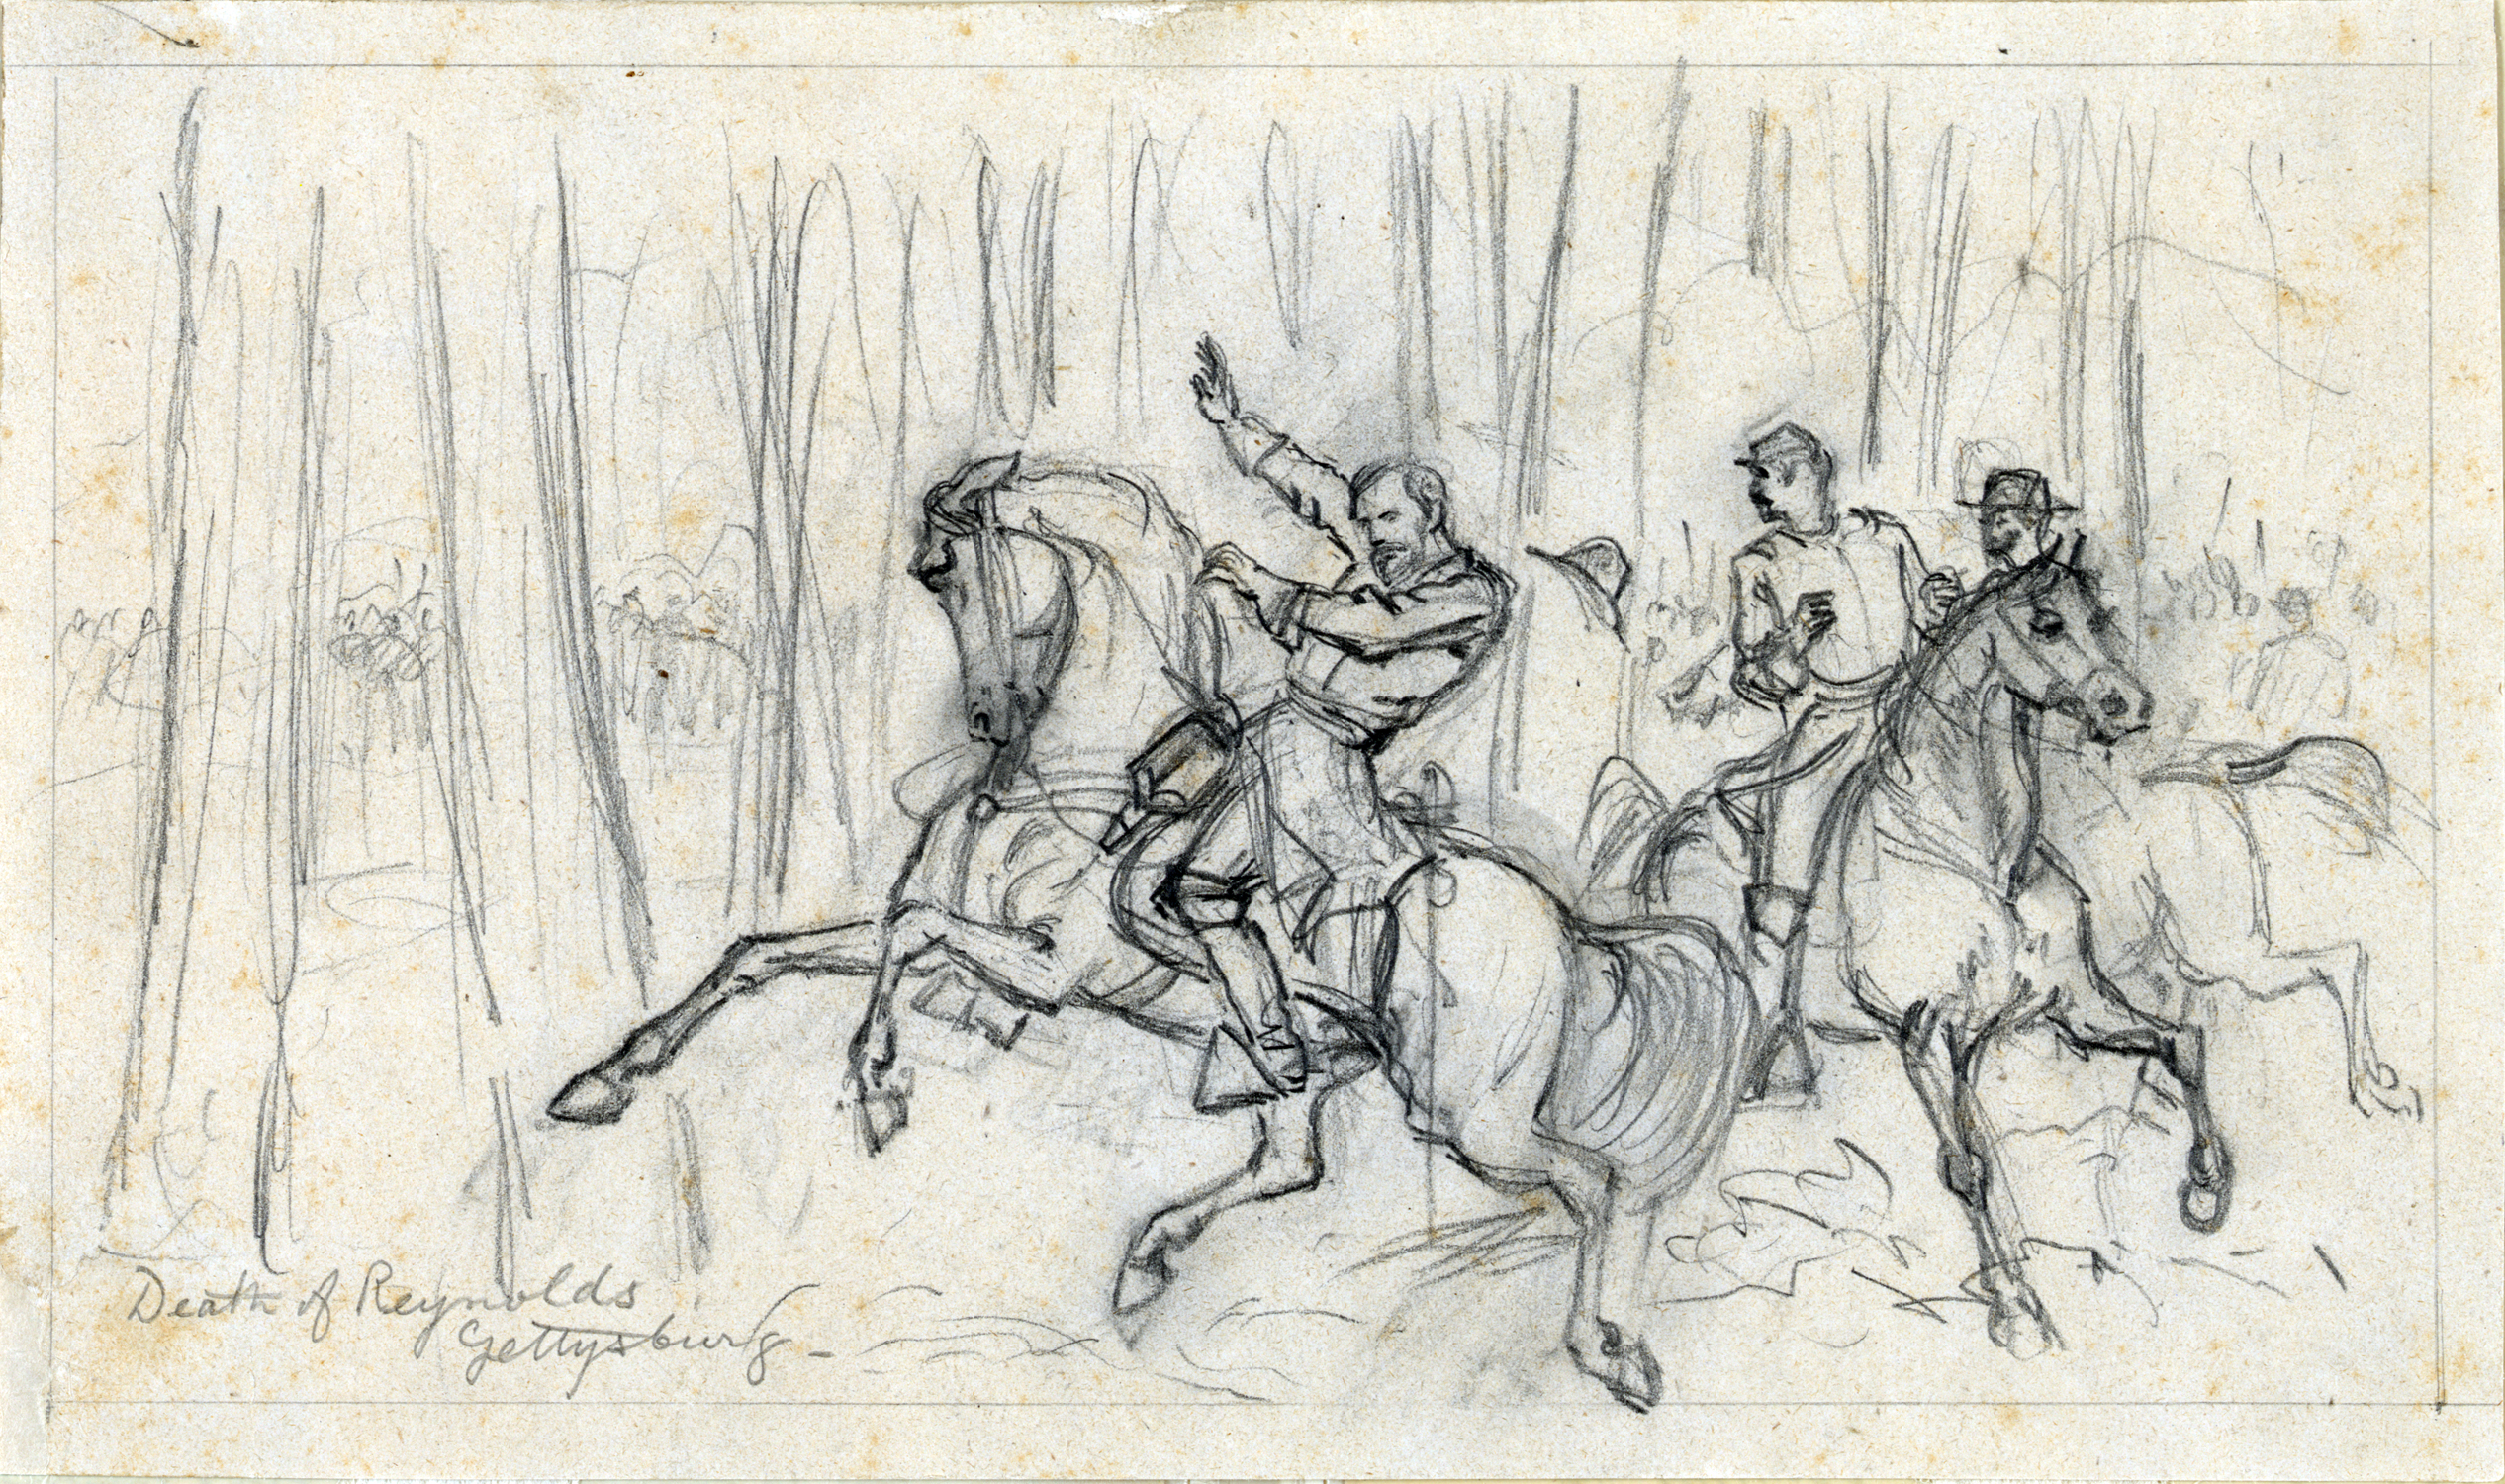 Civil War Soldier Drawings Wallpapers Waud was with the Army of the